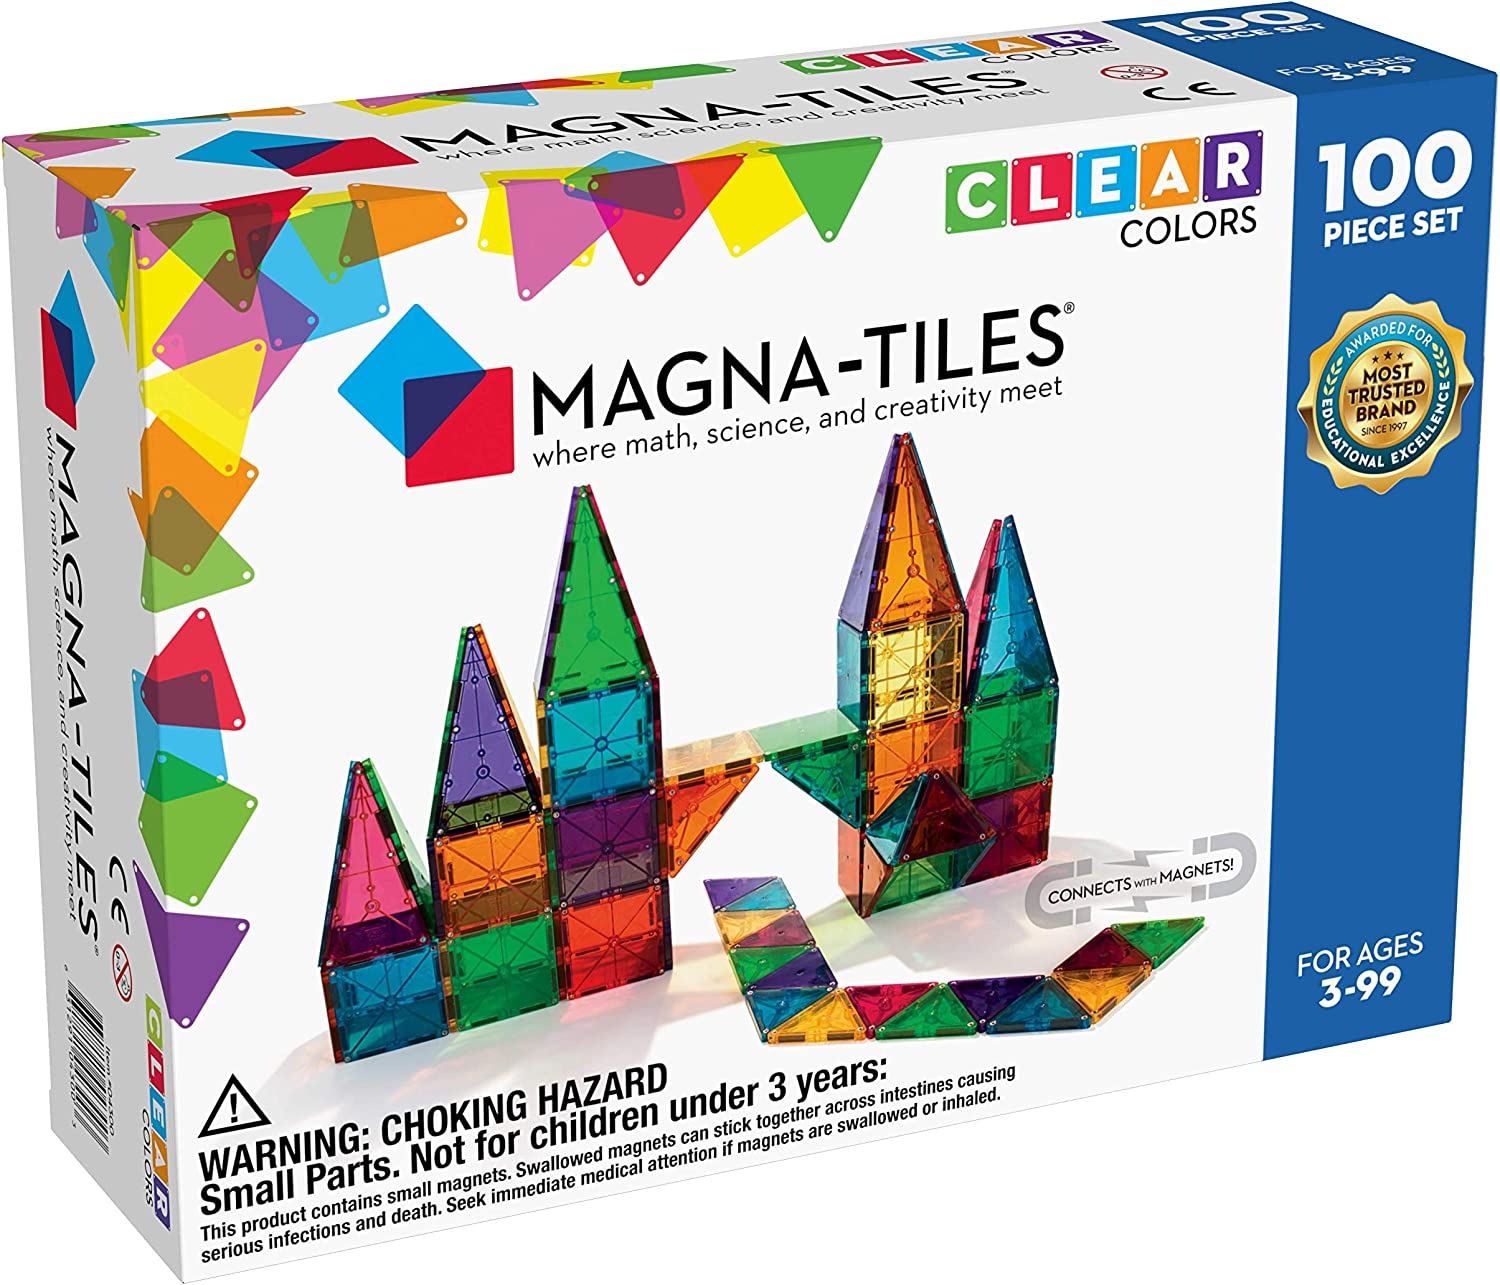 Magna-Tiles 100-Piece Clear Colors Set, The Original Magnetic Building Tiles For Creative Open-Ended Play, Educational Toys For Children Ages 3 Years +: Toys & Games